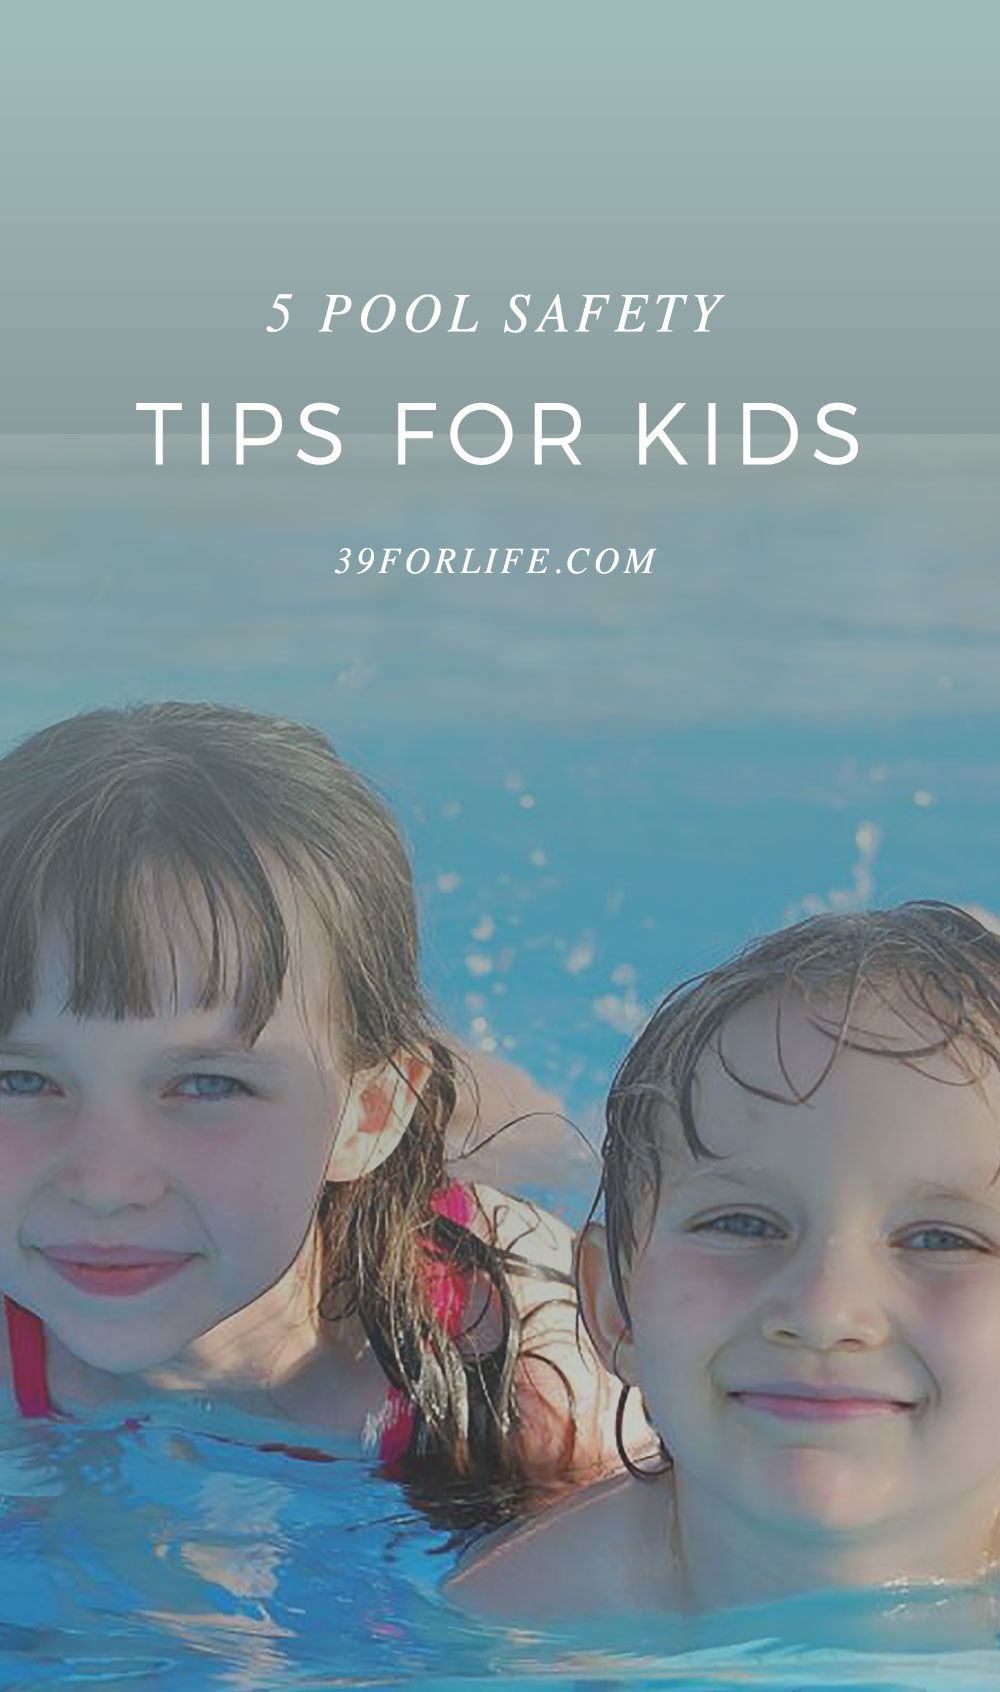 If you have a pool in your backyard or neighborhood, make sure you're following these safety tips..